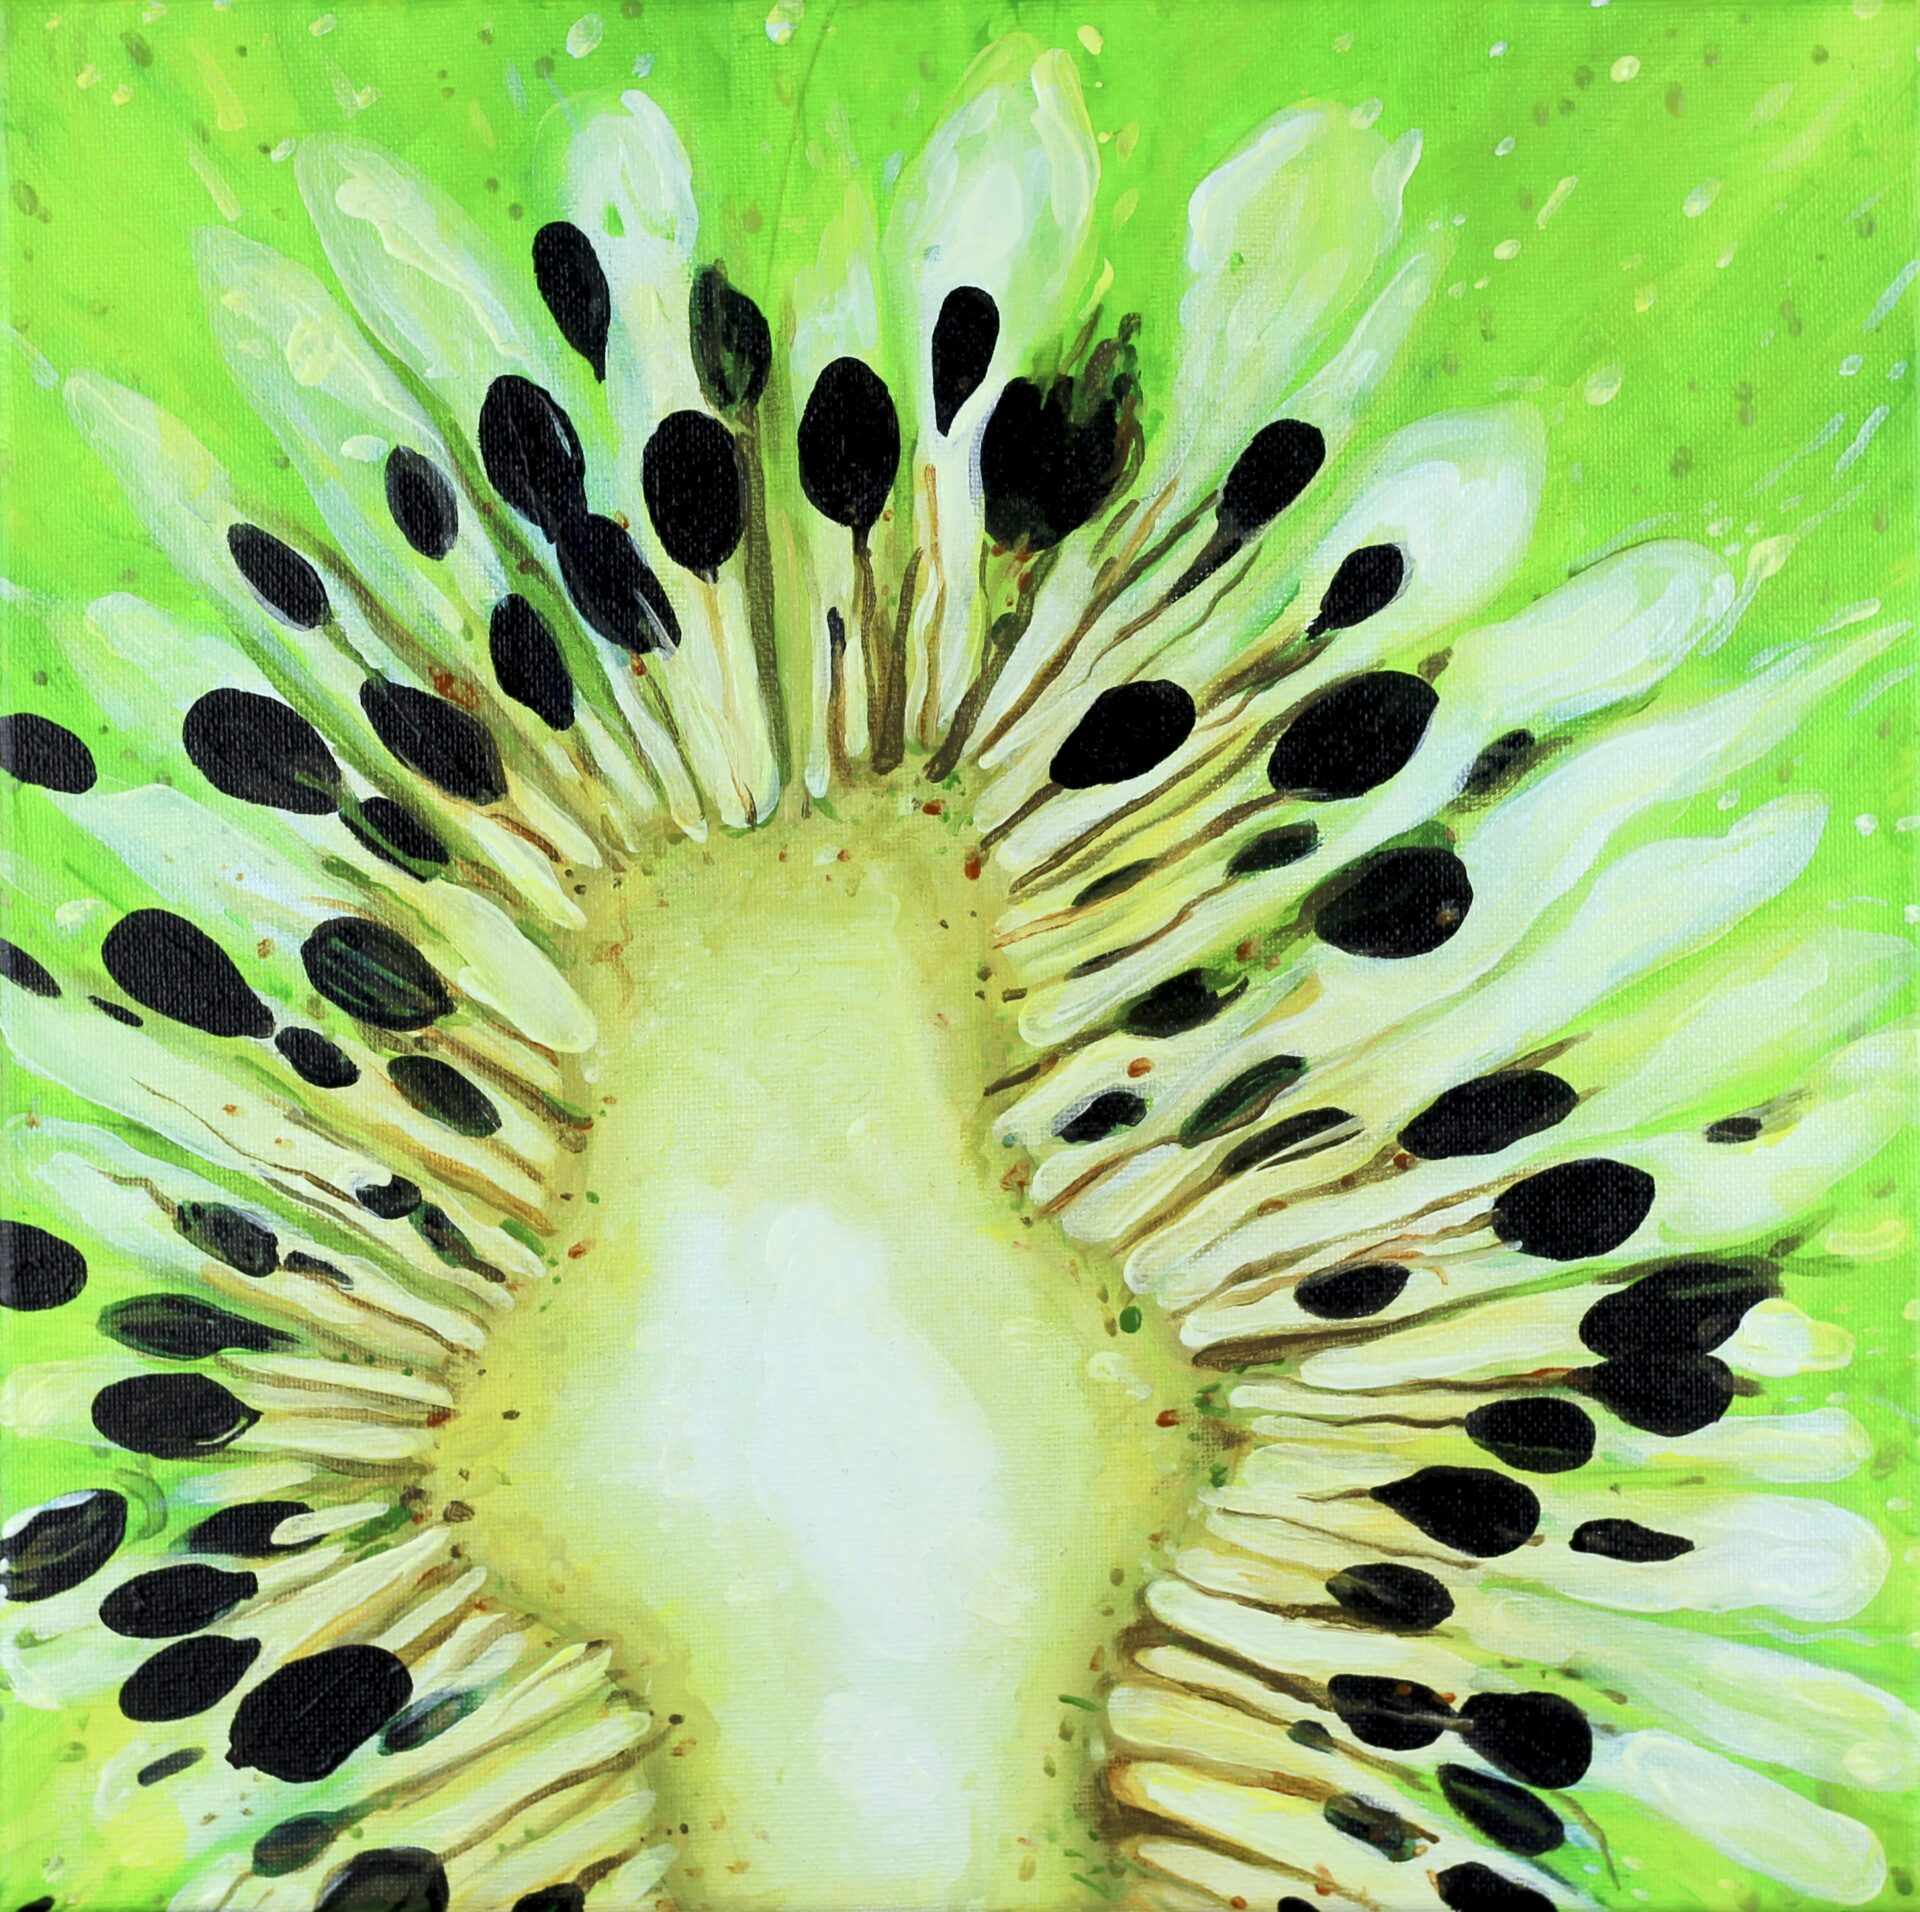 "Angela Faustina, Kiwi II, 2016. Oil on canvas, 12"" by 12""."